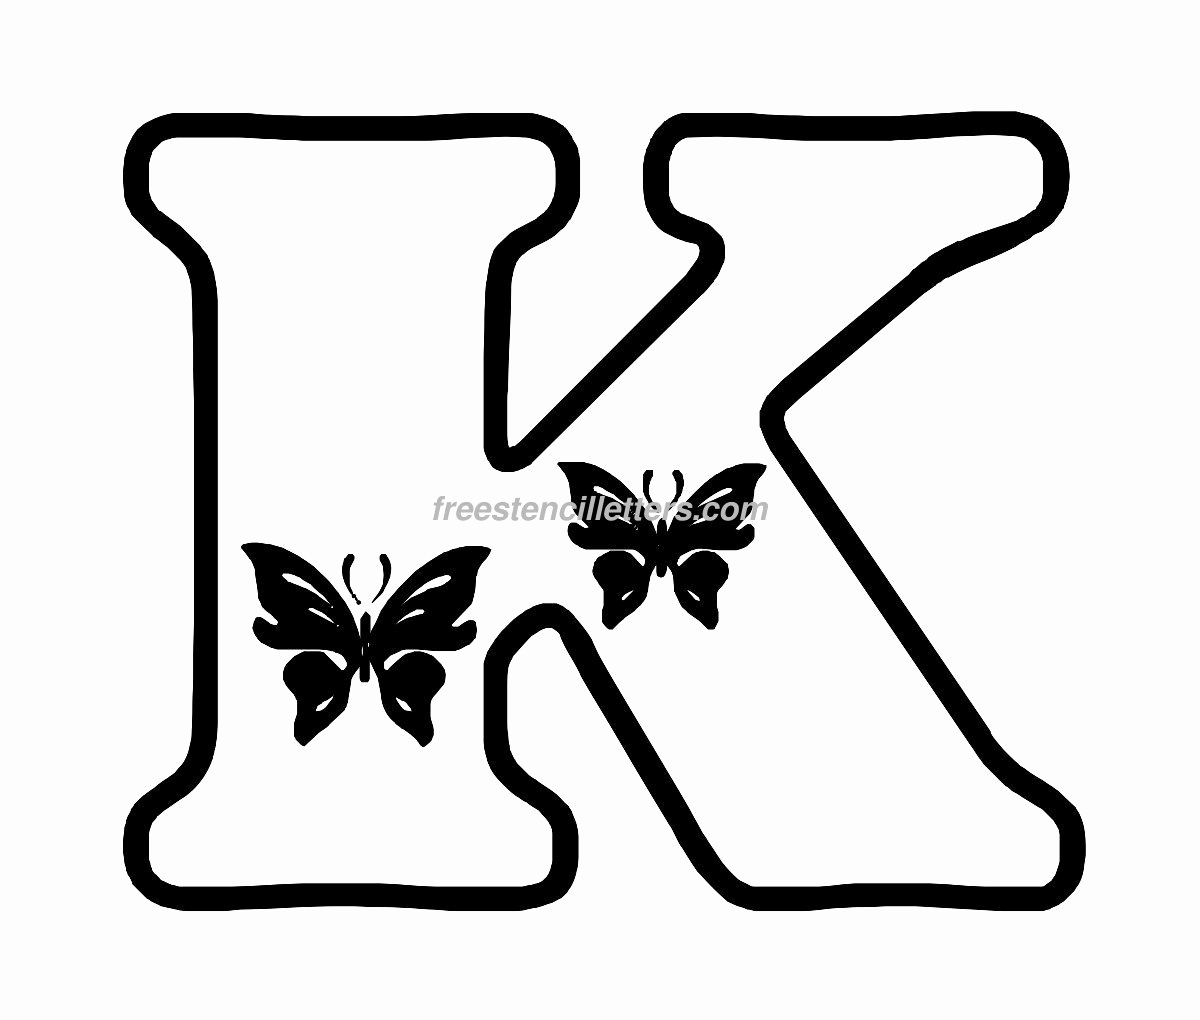 Lettering Stencils to Print Inspirational butterfly Stencil Letters Archives Free Stencil Letters